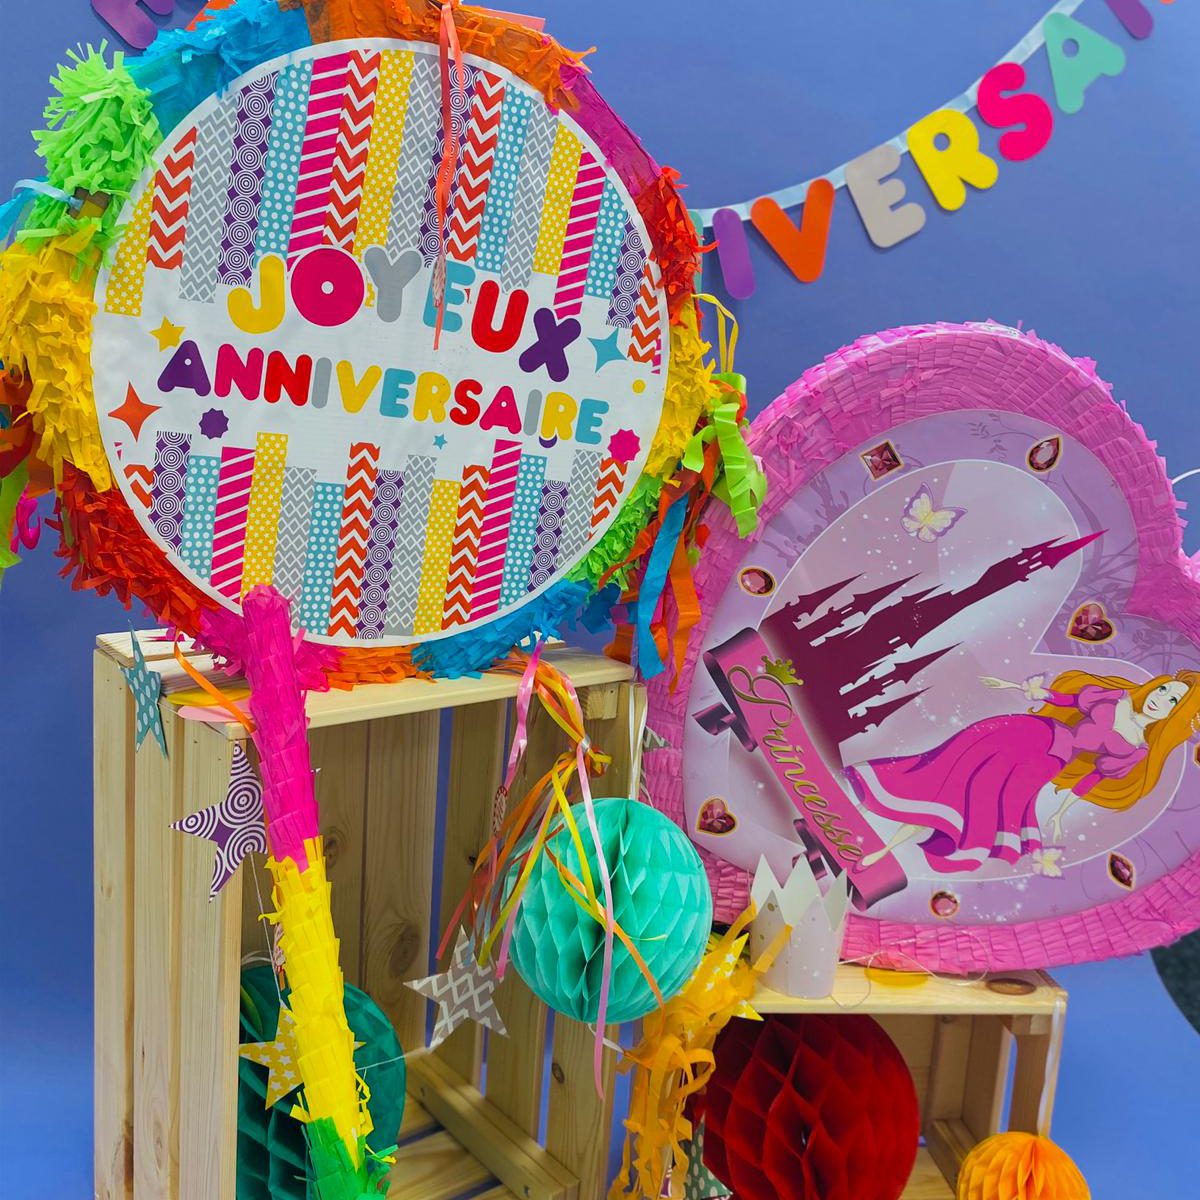 WhatsApp Image 2020 08 27 at 11.20.12 square - PINATAS